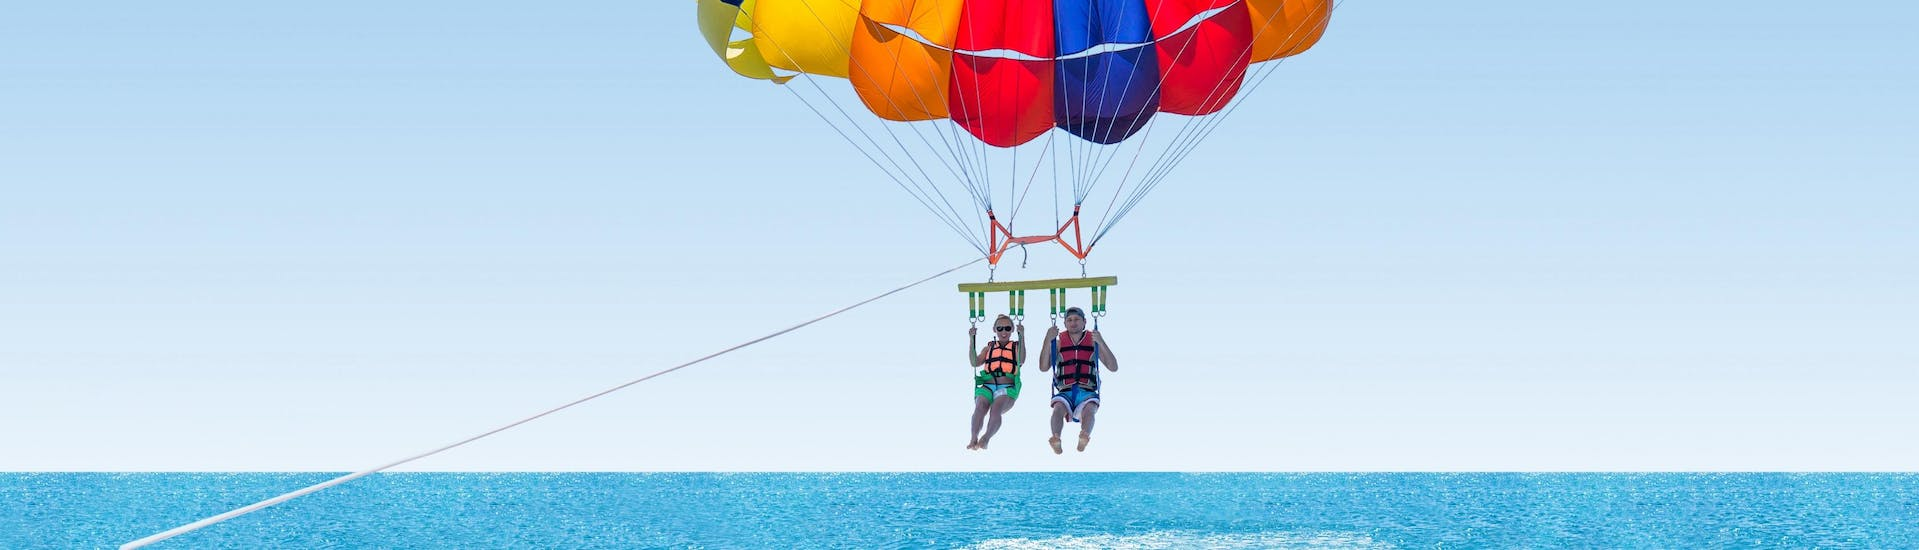 Friends are parasailing in the blue sky over the ocean